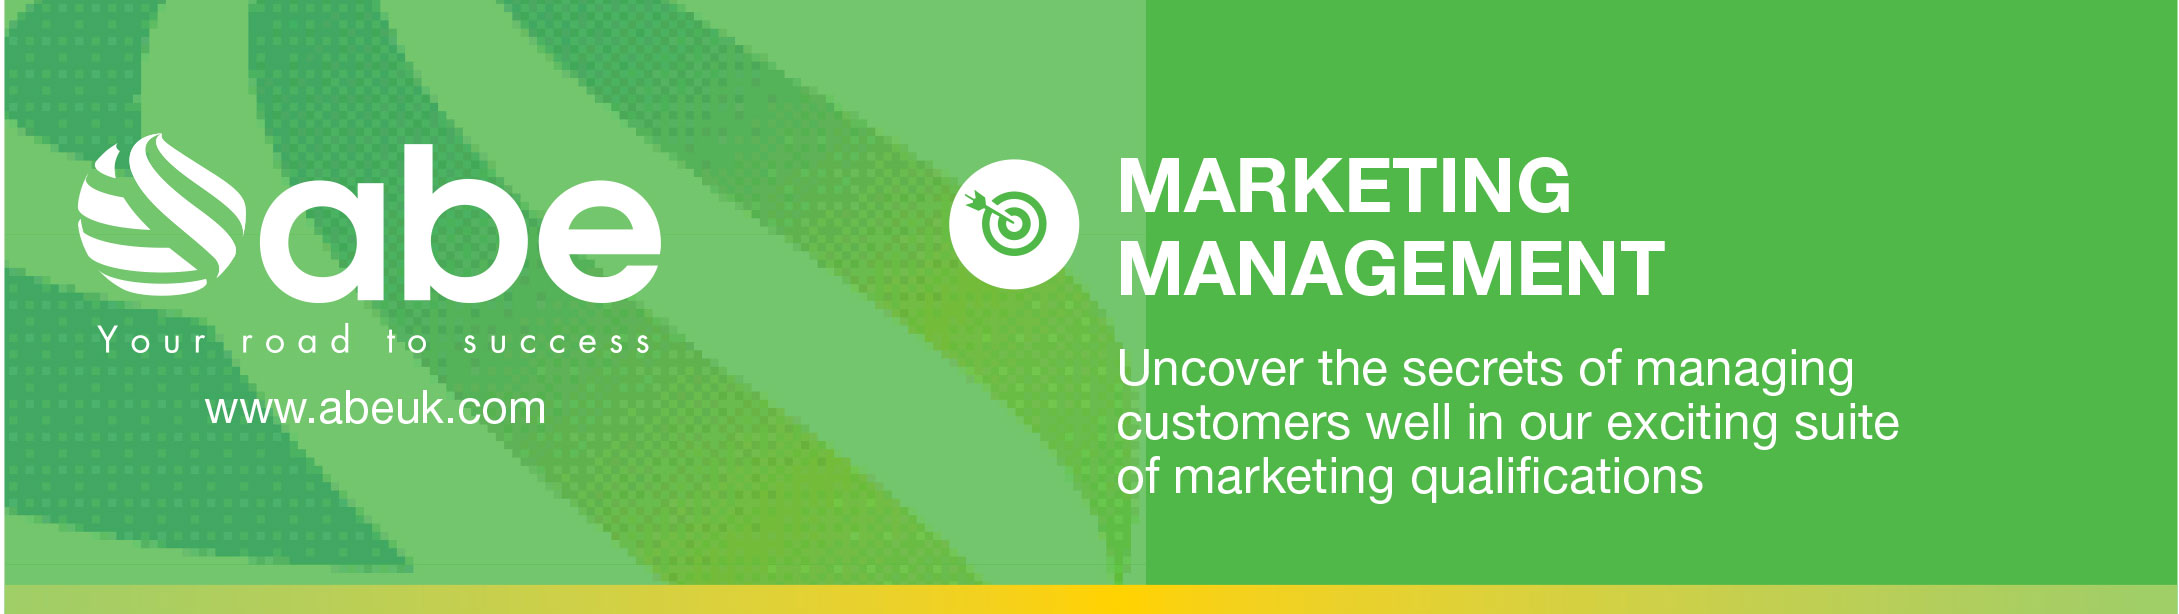 Marketing Management course in mauritius